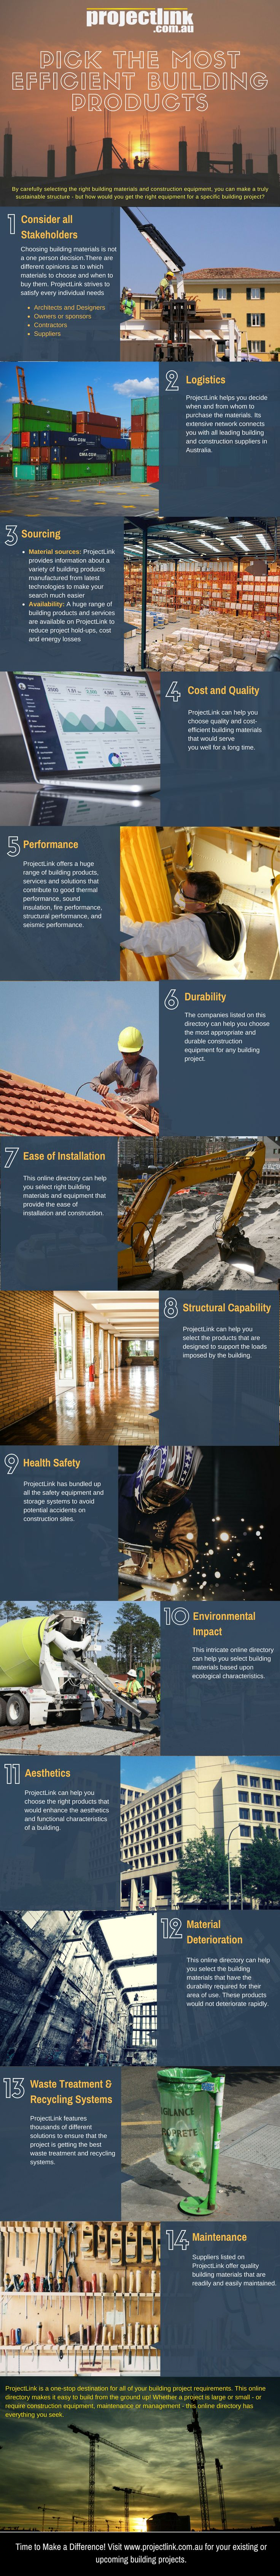 Factors to consider while selecting suitable services and products for any building project.